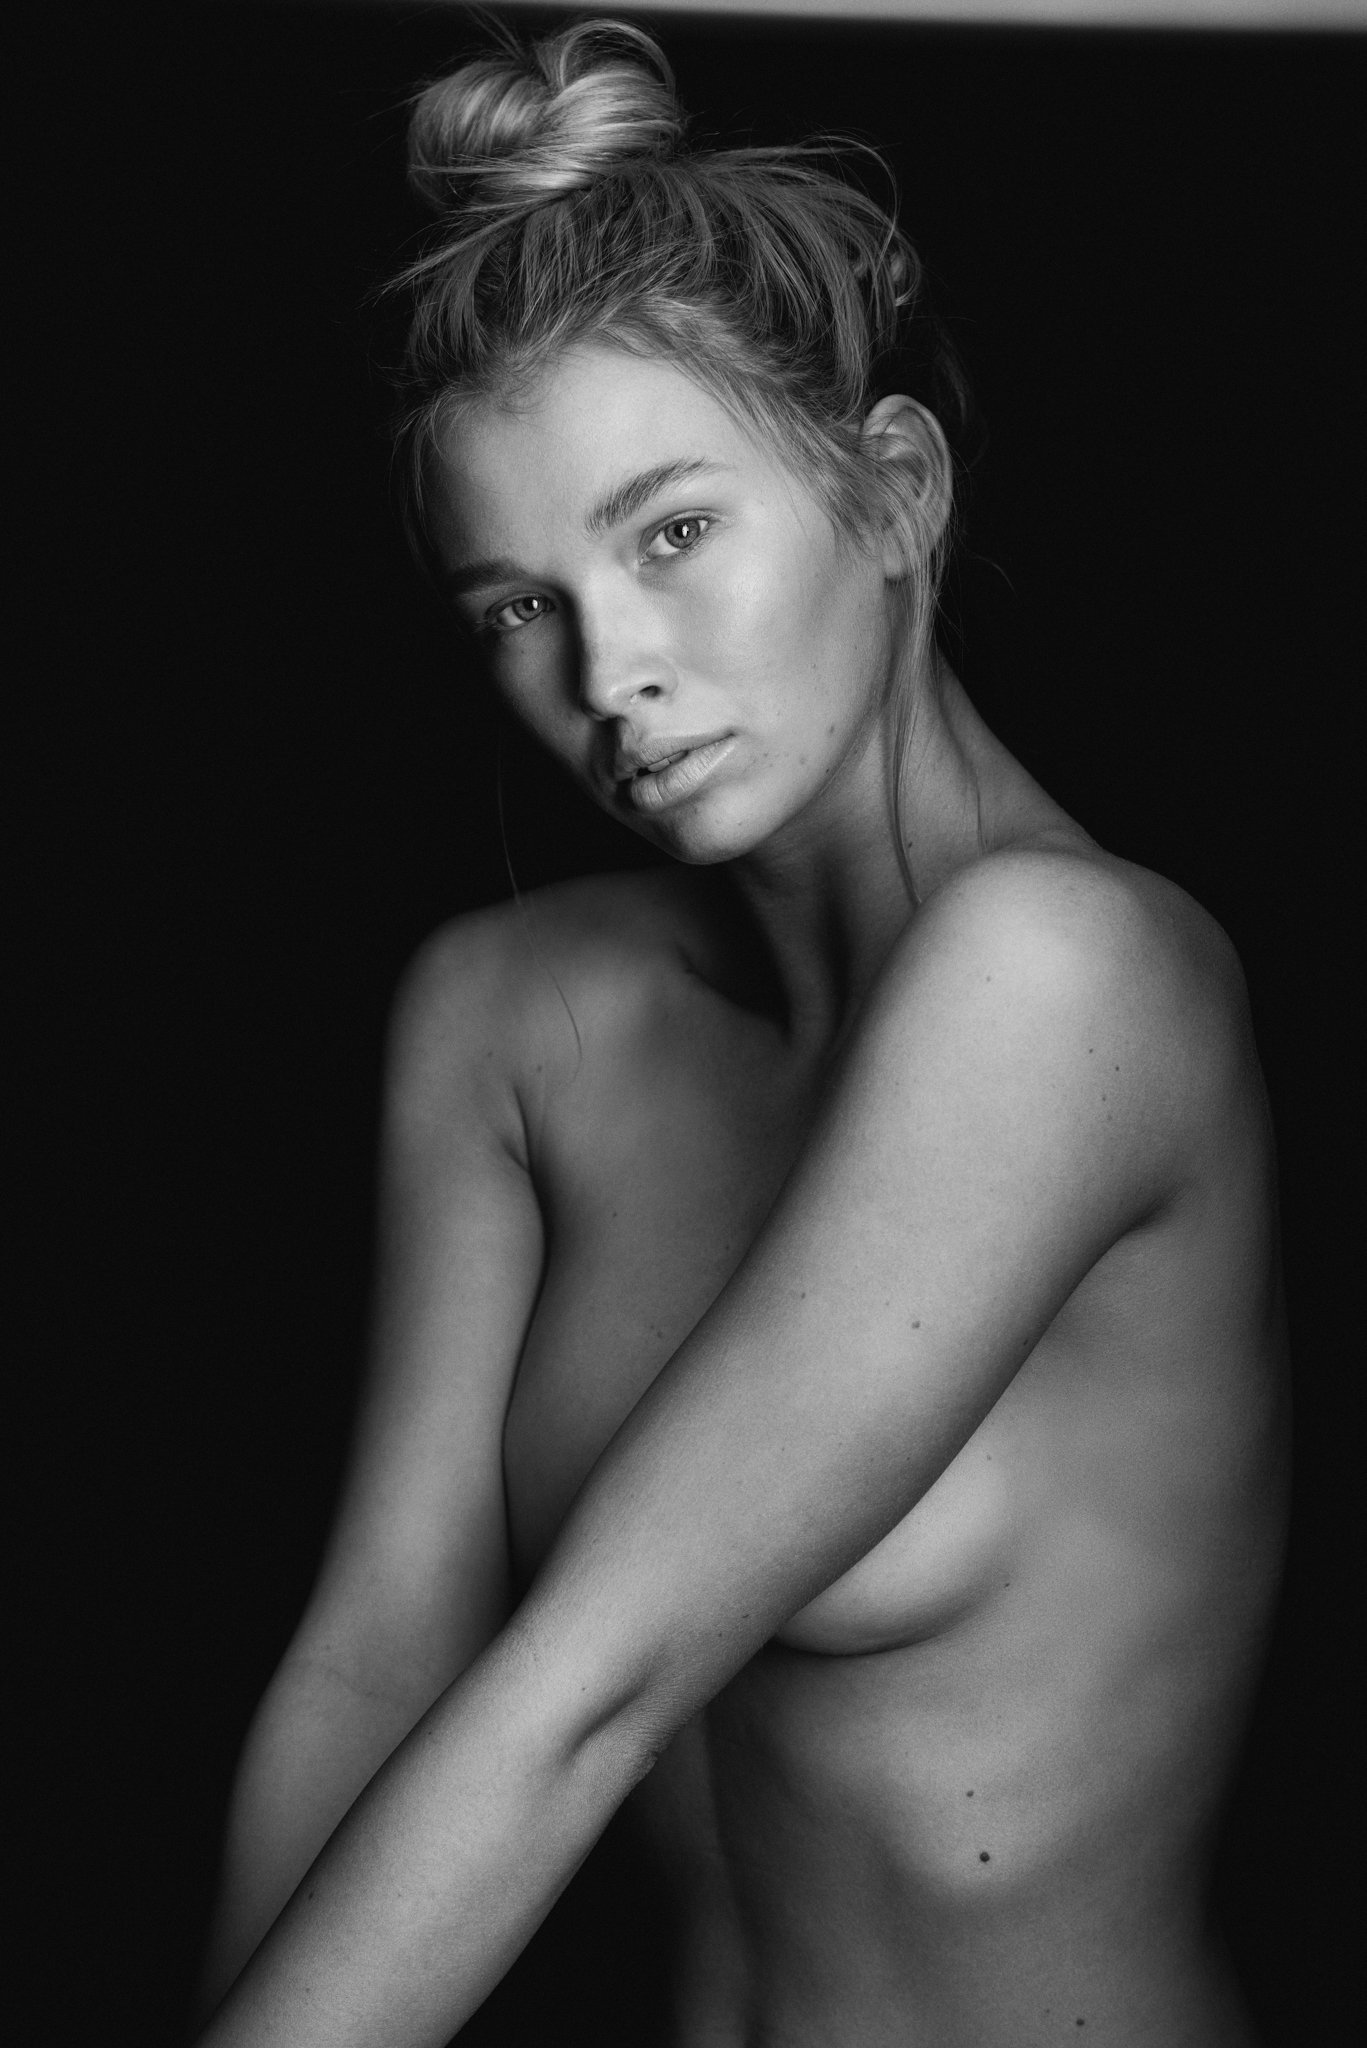 Karla; Raw - RAW SERIES |Face clean (no makeup); Muse Karla Bodycote(Viviens Model Management);Photographs by Dave Blake.